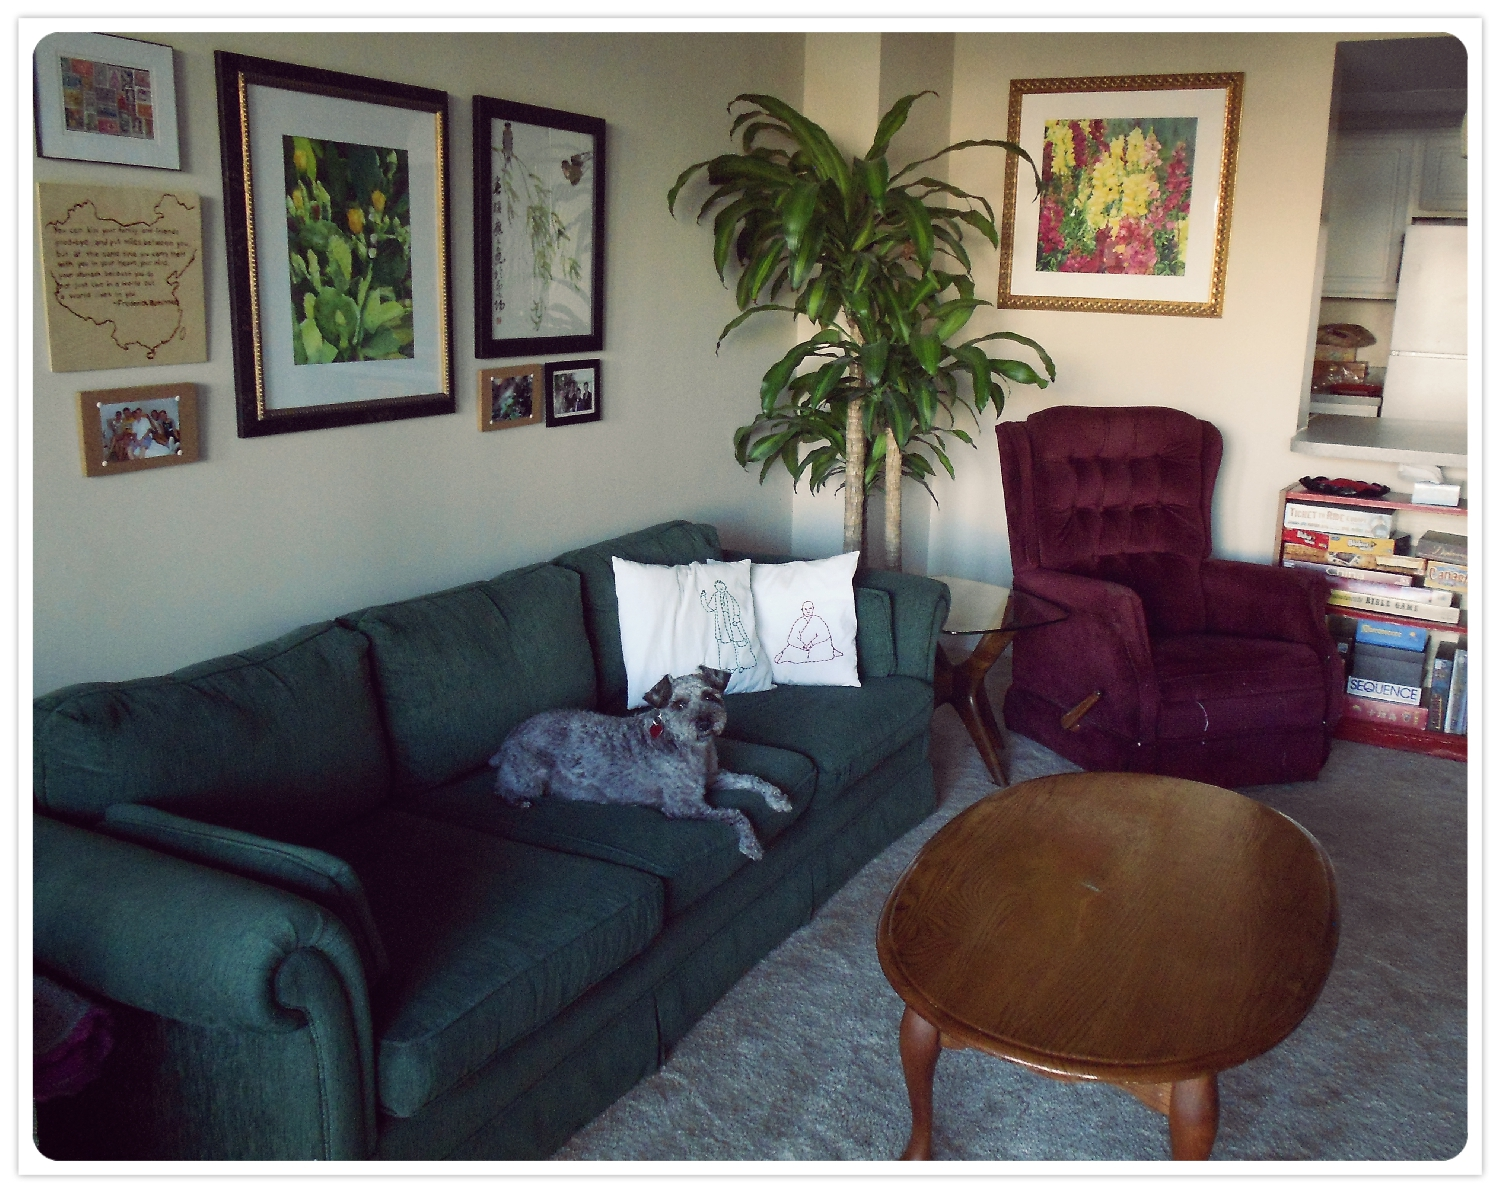 Our throw pillows and wall art were handmade by friends or family and furniture runs the gamut of secondhand sources (Craigslist, yard sale, community sale, gifts). T-dog long ago claimed the entire couch as his own.